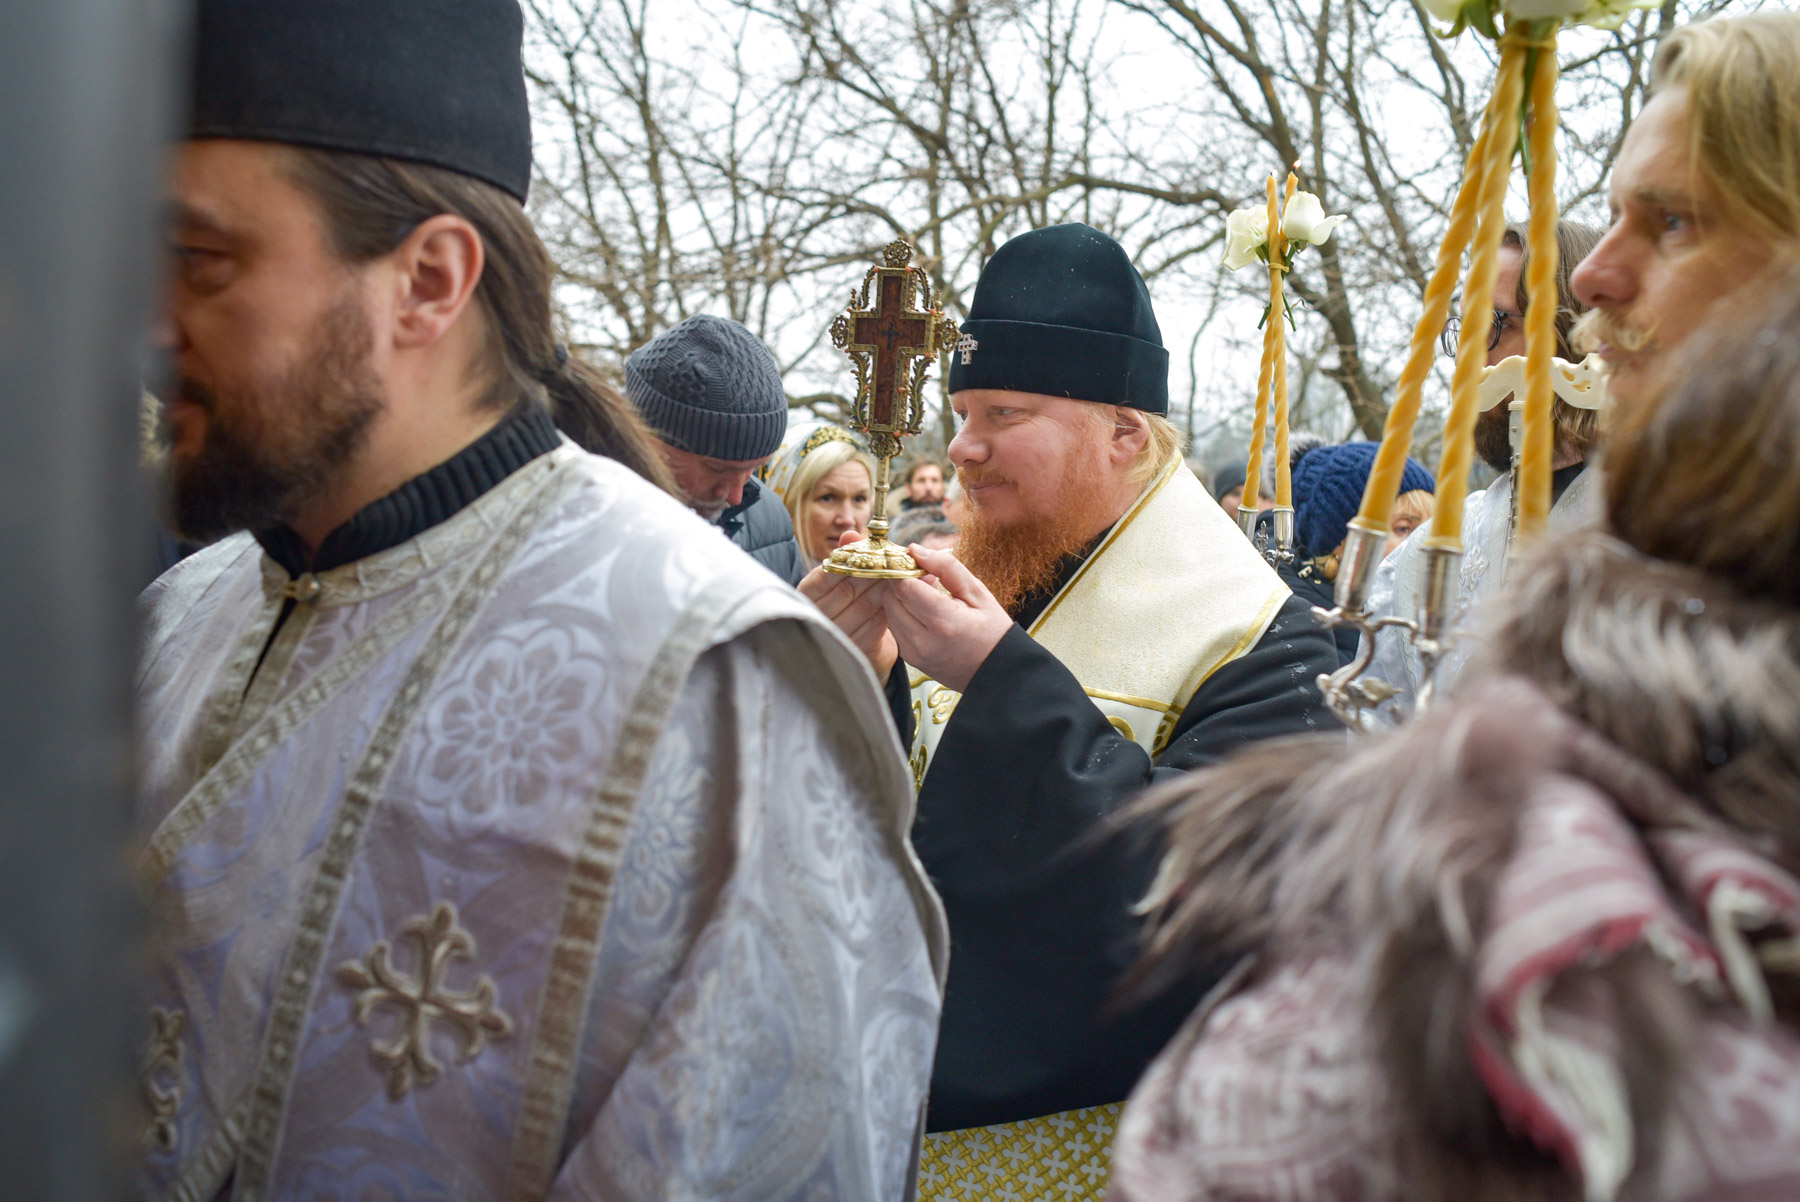 photos of orthodox christmas 0217 1